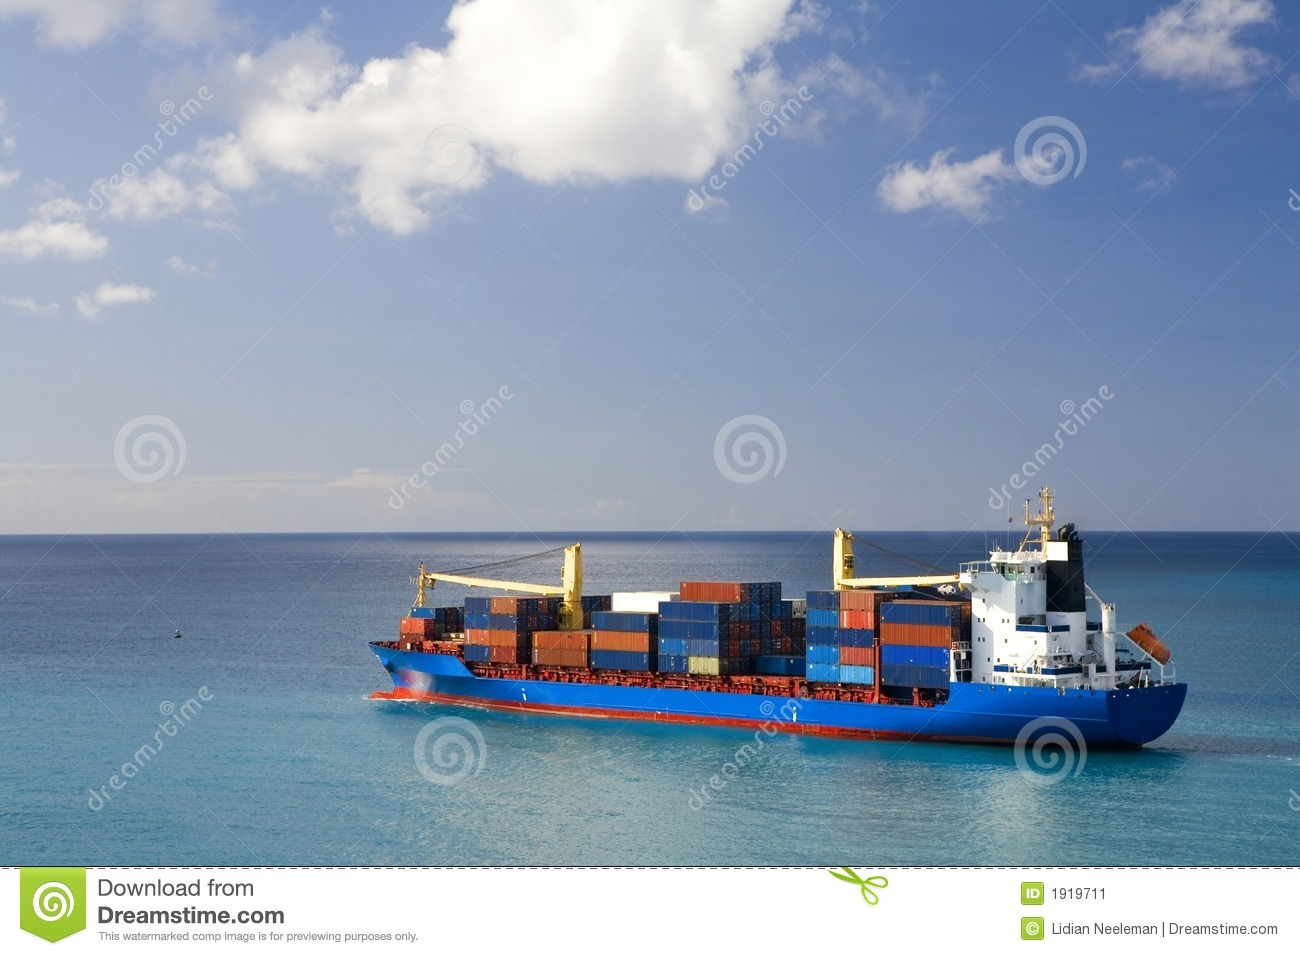 Containerschiff in hoher See